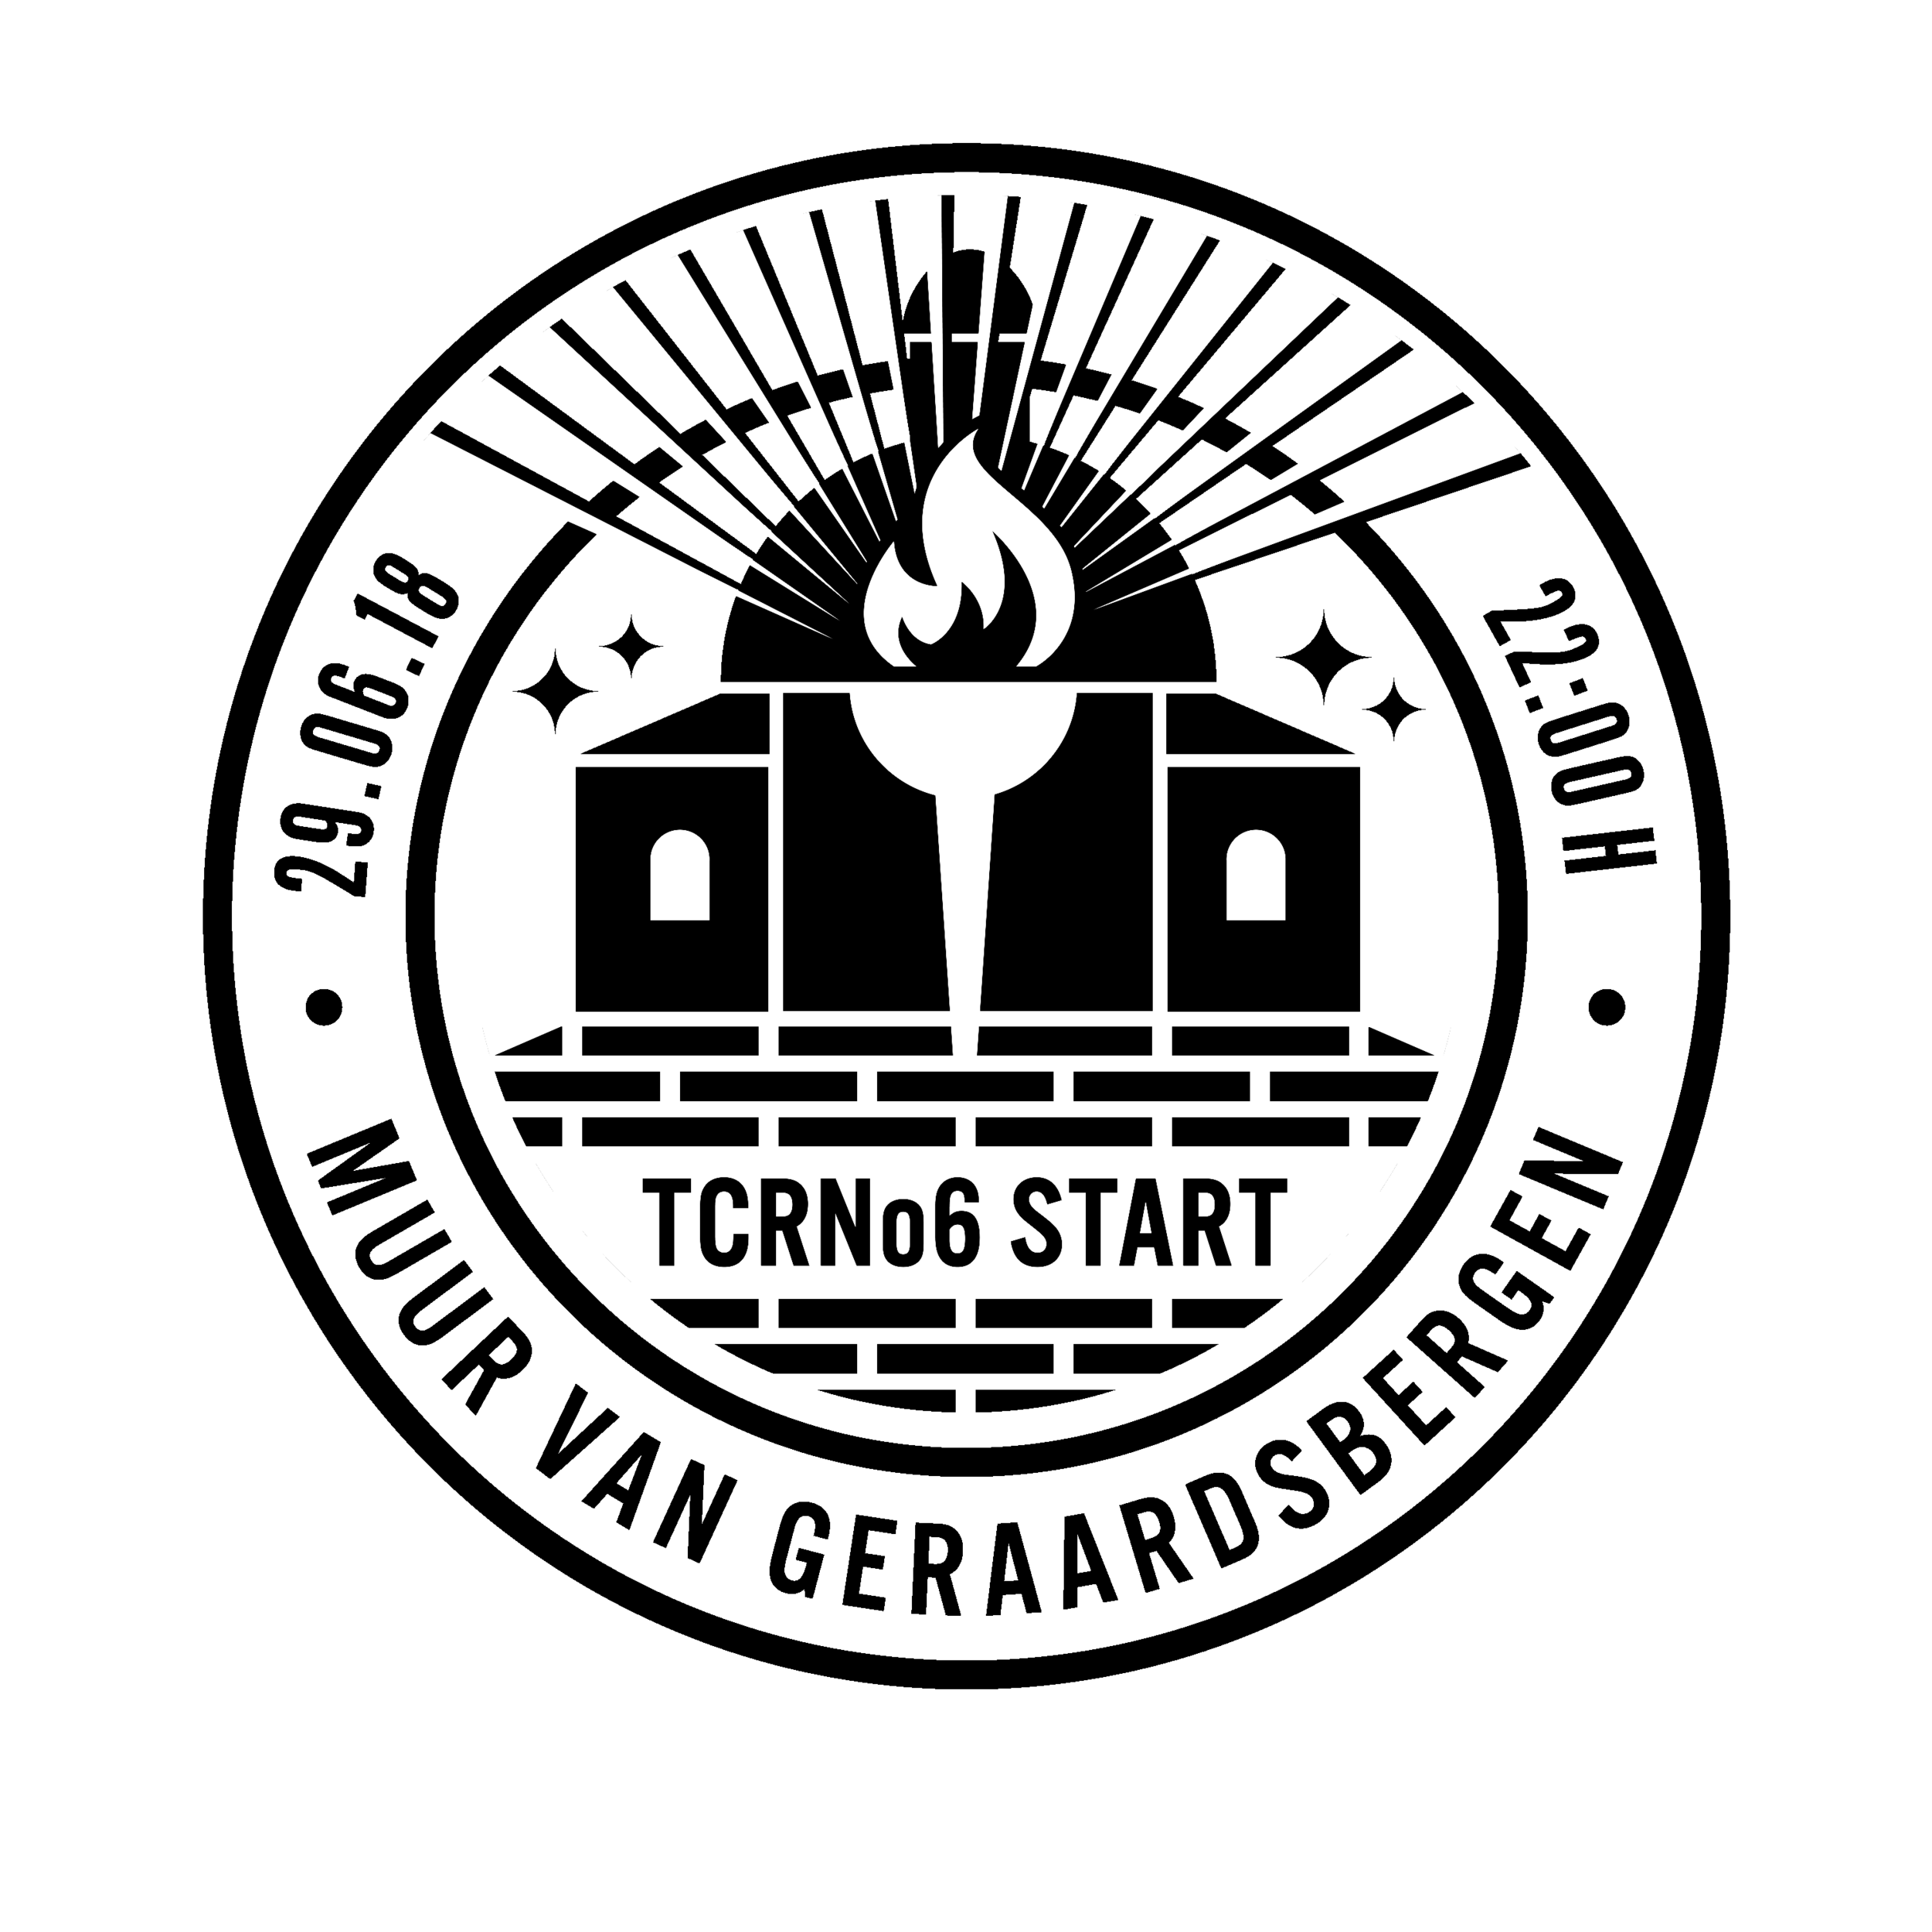 TCR_Checkpoint_Logo_PNG_START.png